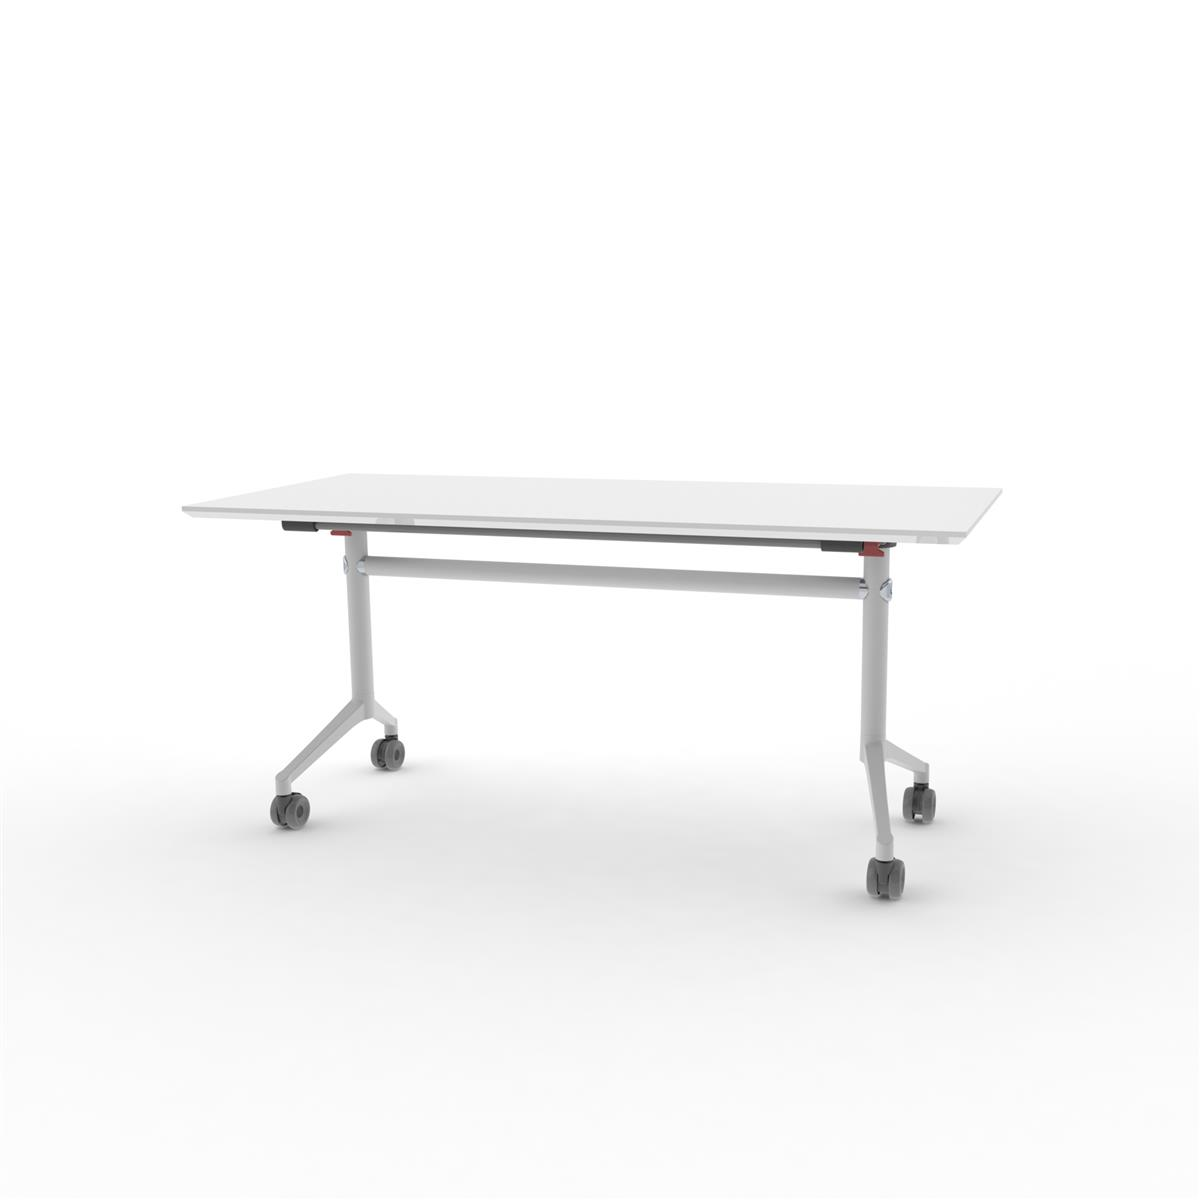 X1 Seamless Folding Table 160x70 cm med hvit HPL og hvitt understell